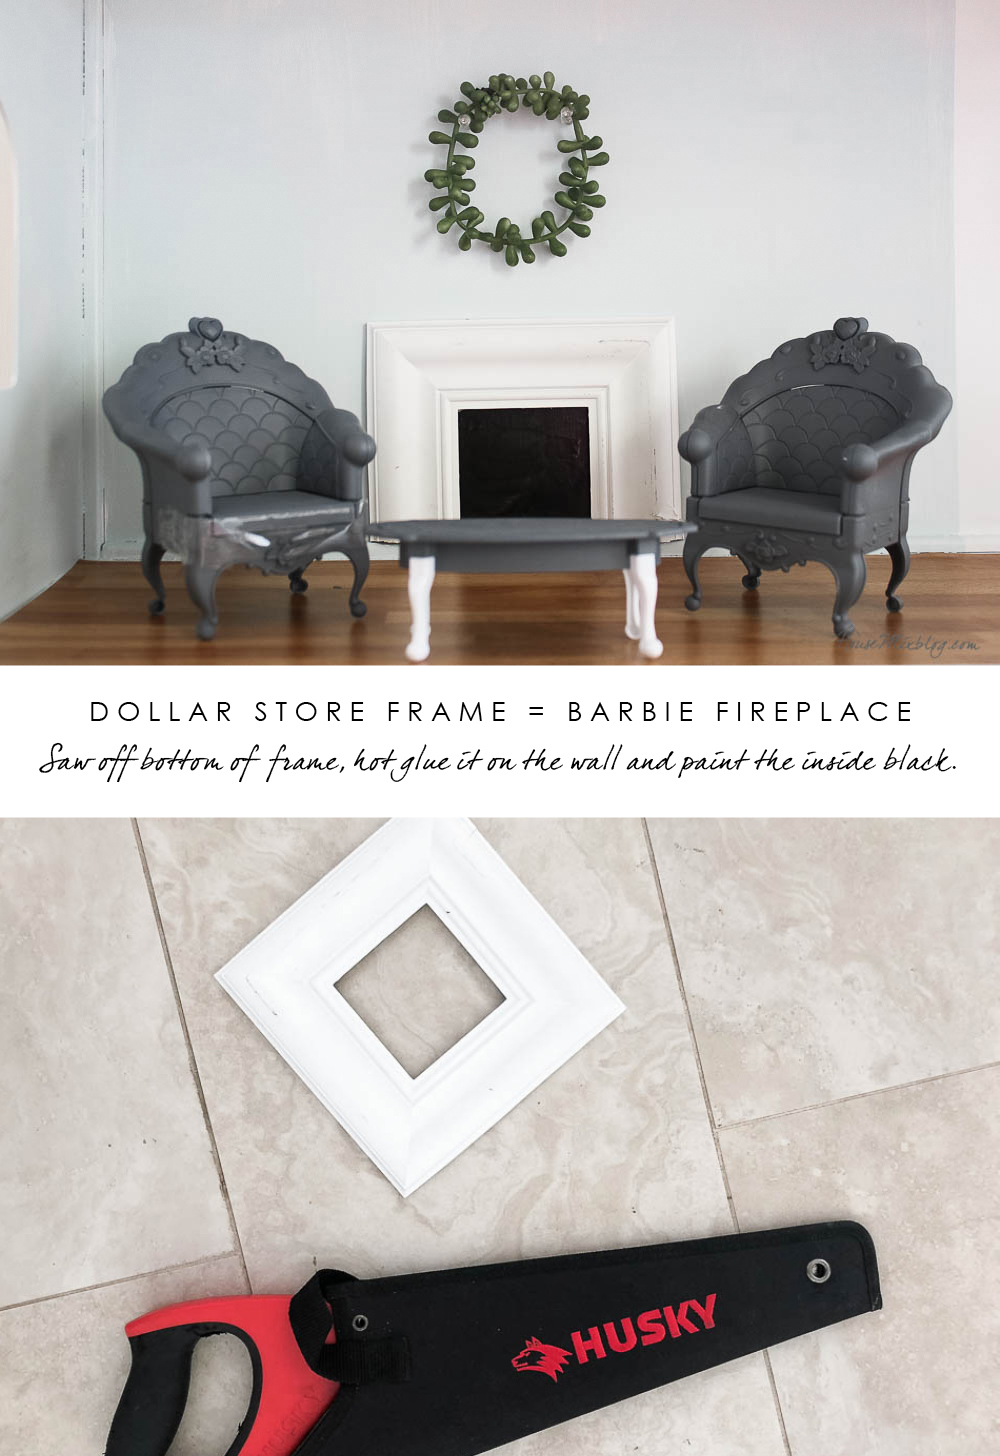 Barbie DIY furniture hacks - Doll fireplace from a dollar store frame